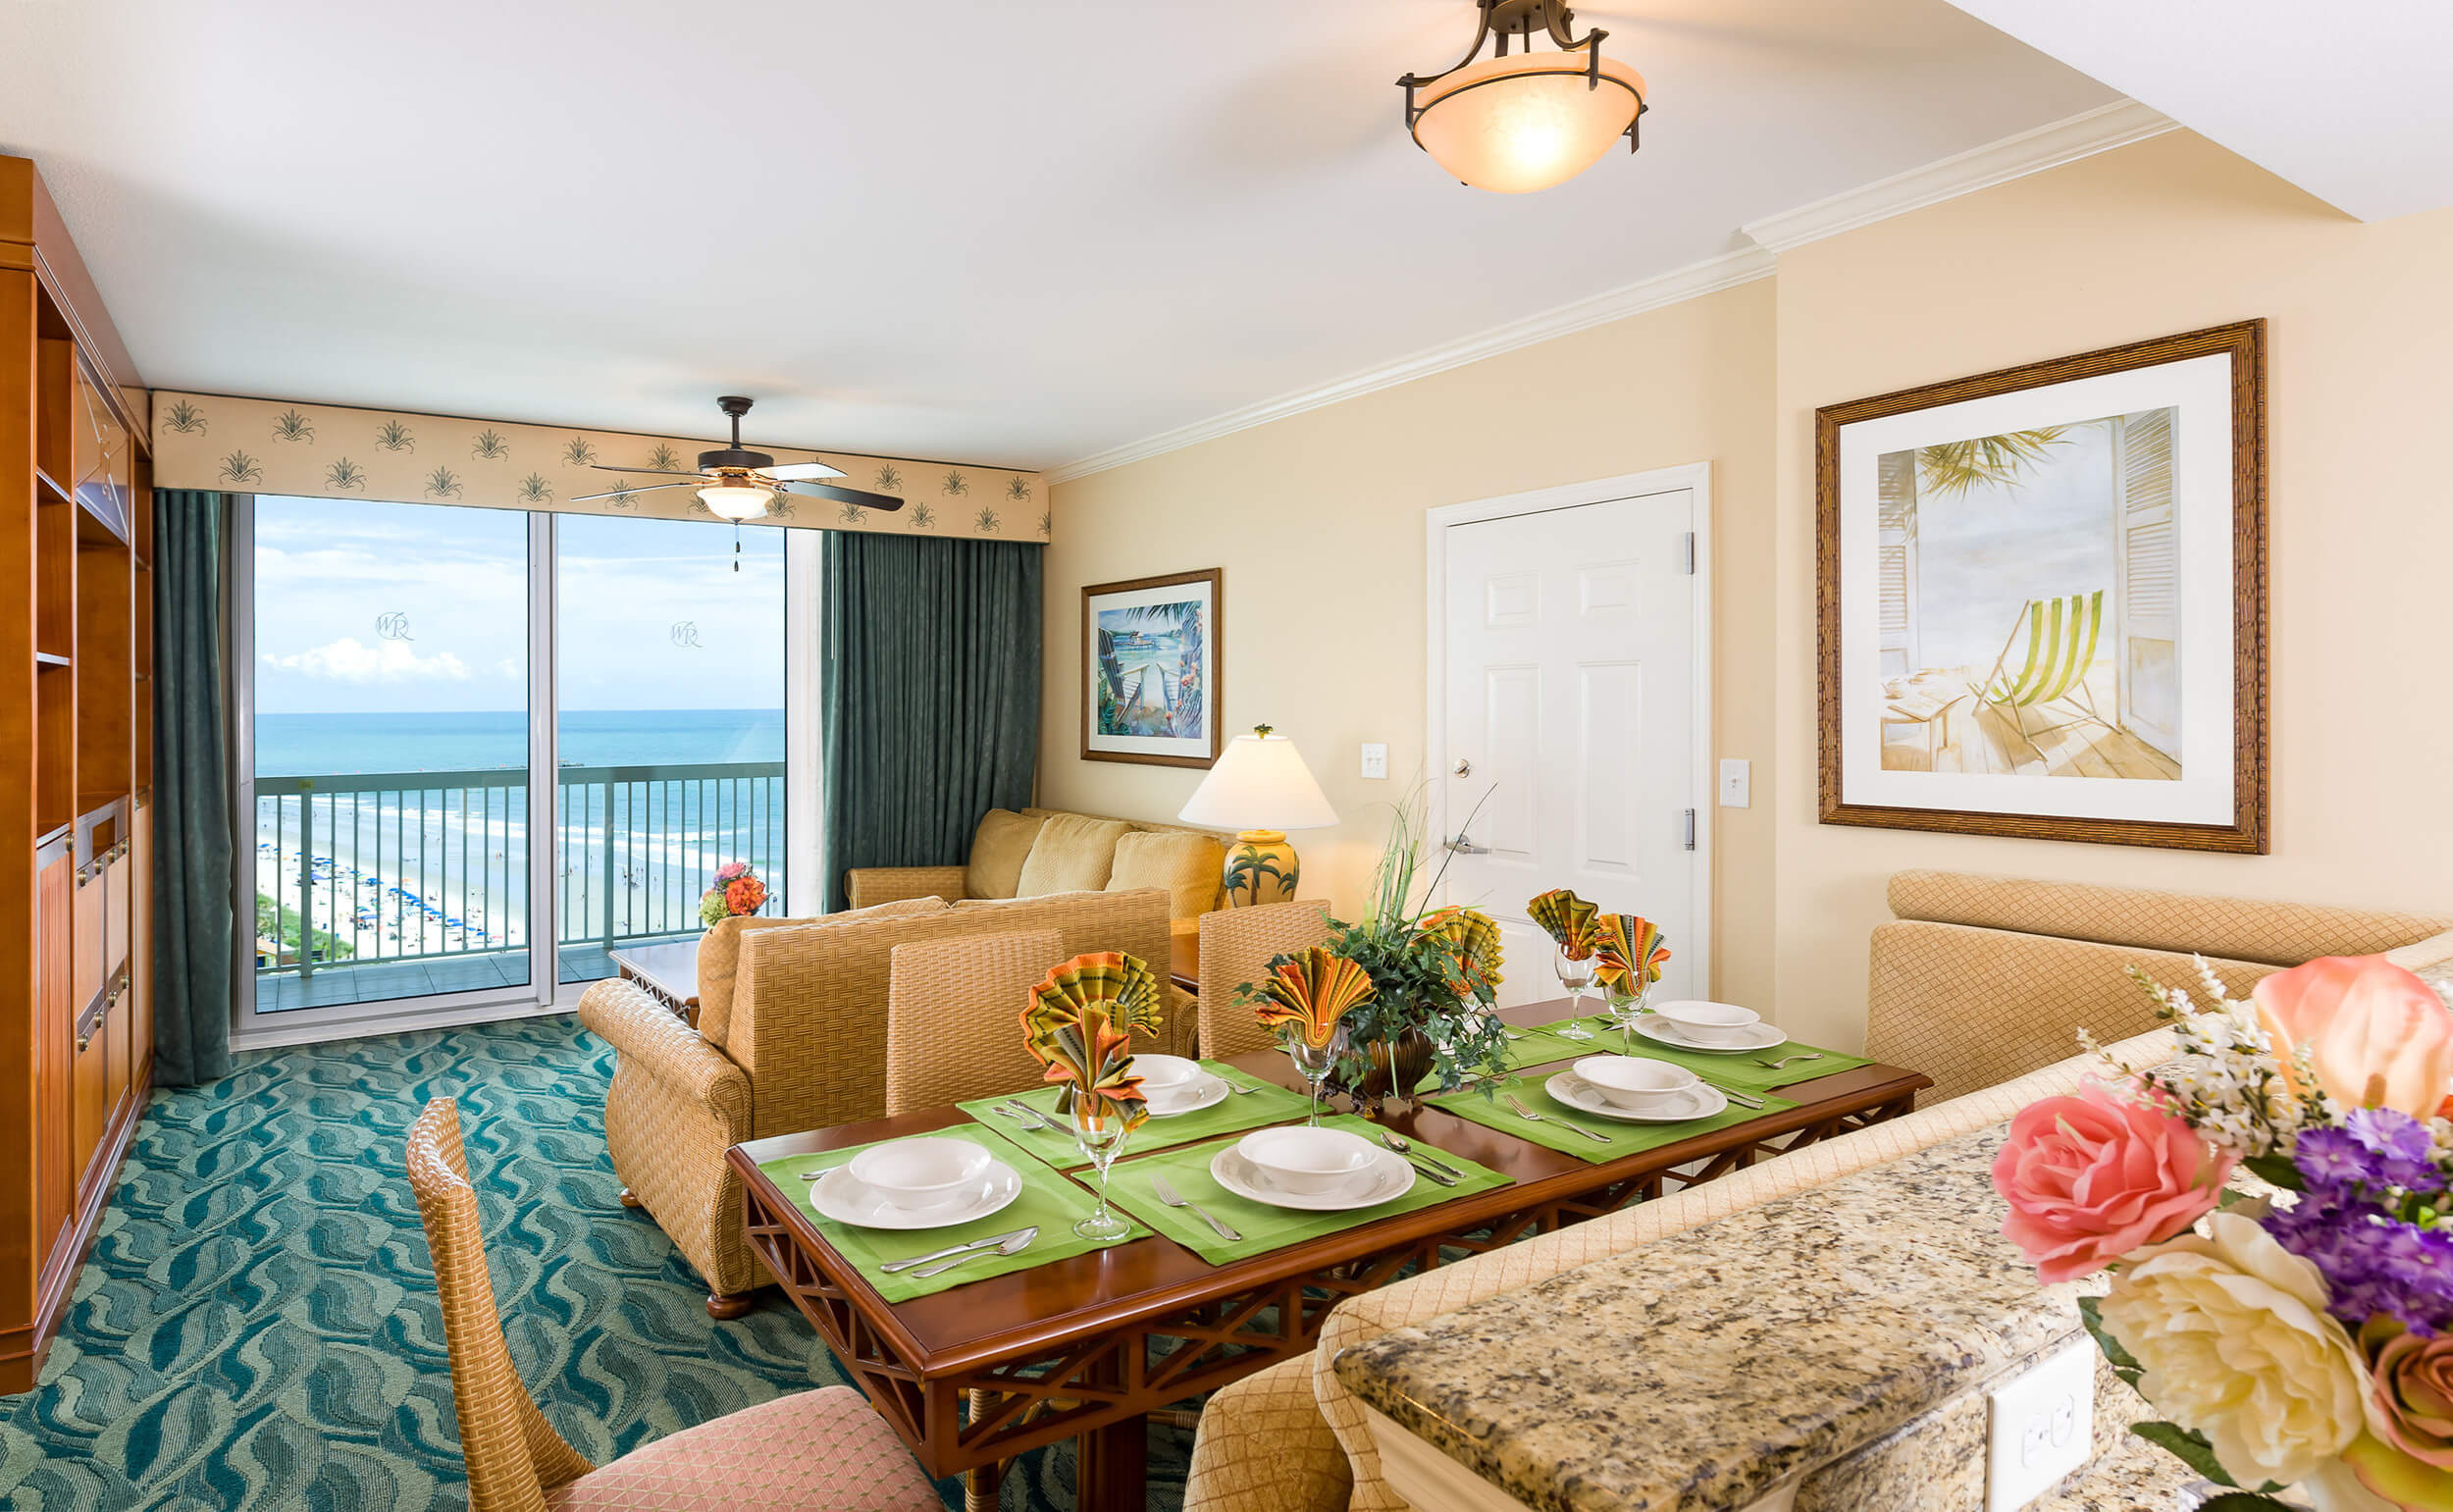 Dining table and living area in One-Bedroom Deluxe Ocean View Villa | Westgate Myrtle Beach Oceanfront Resort